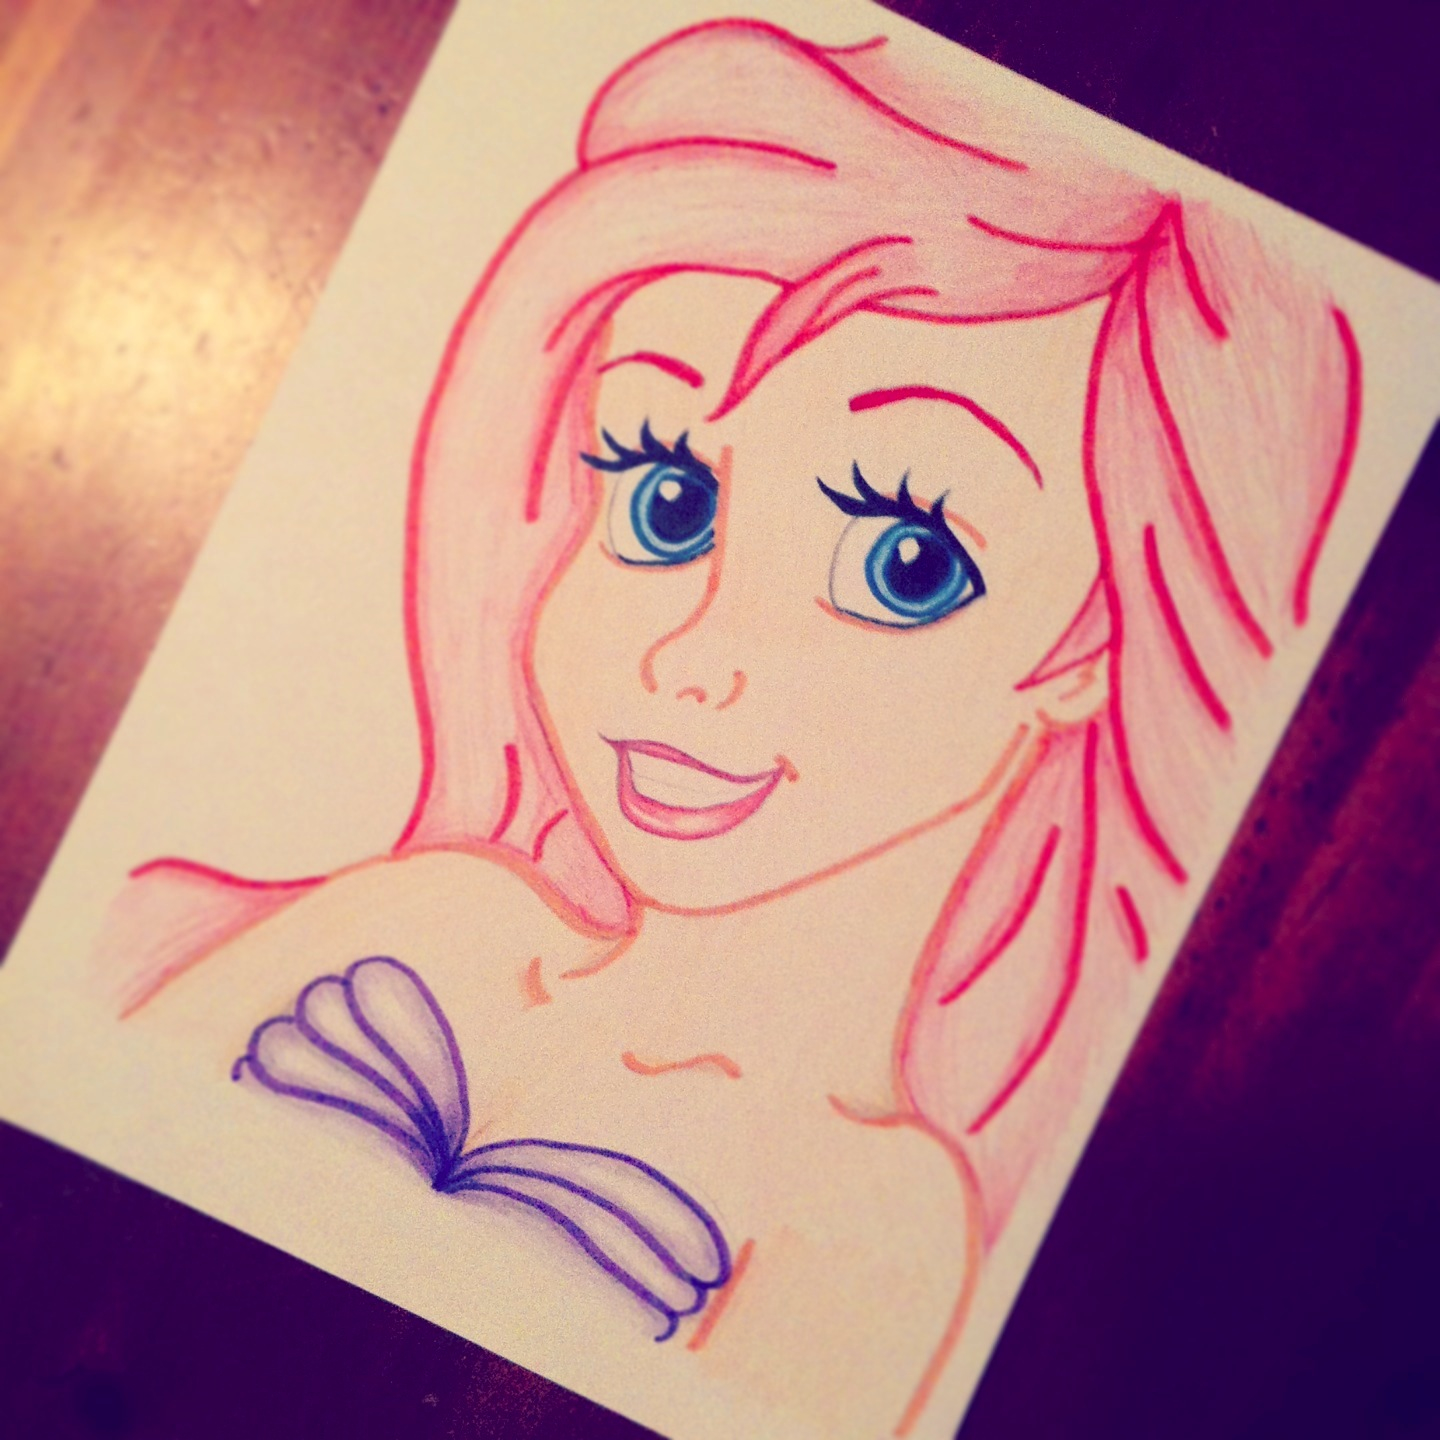 Drawn princess face Need to but Done already